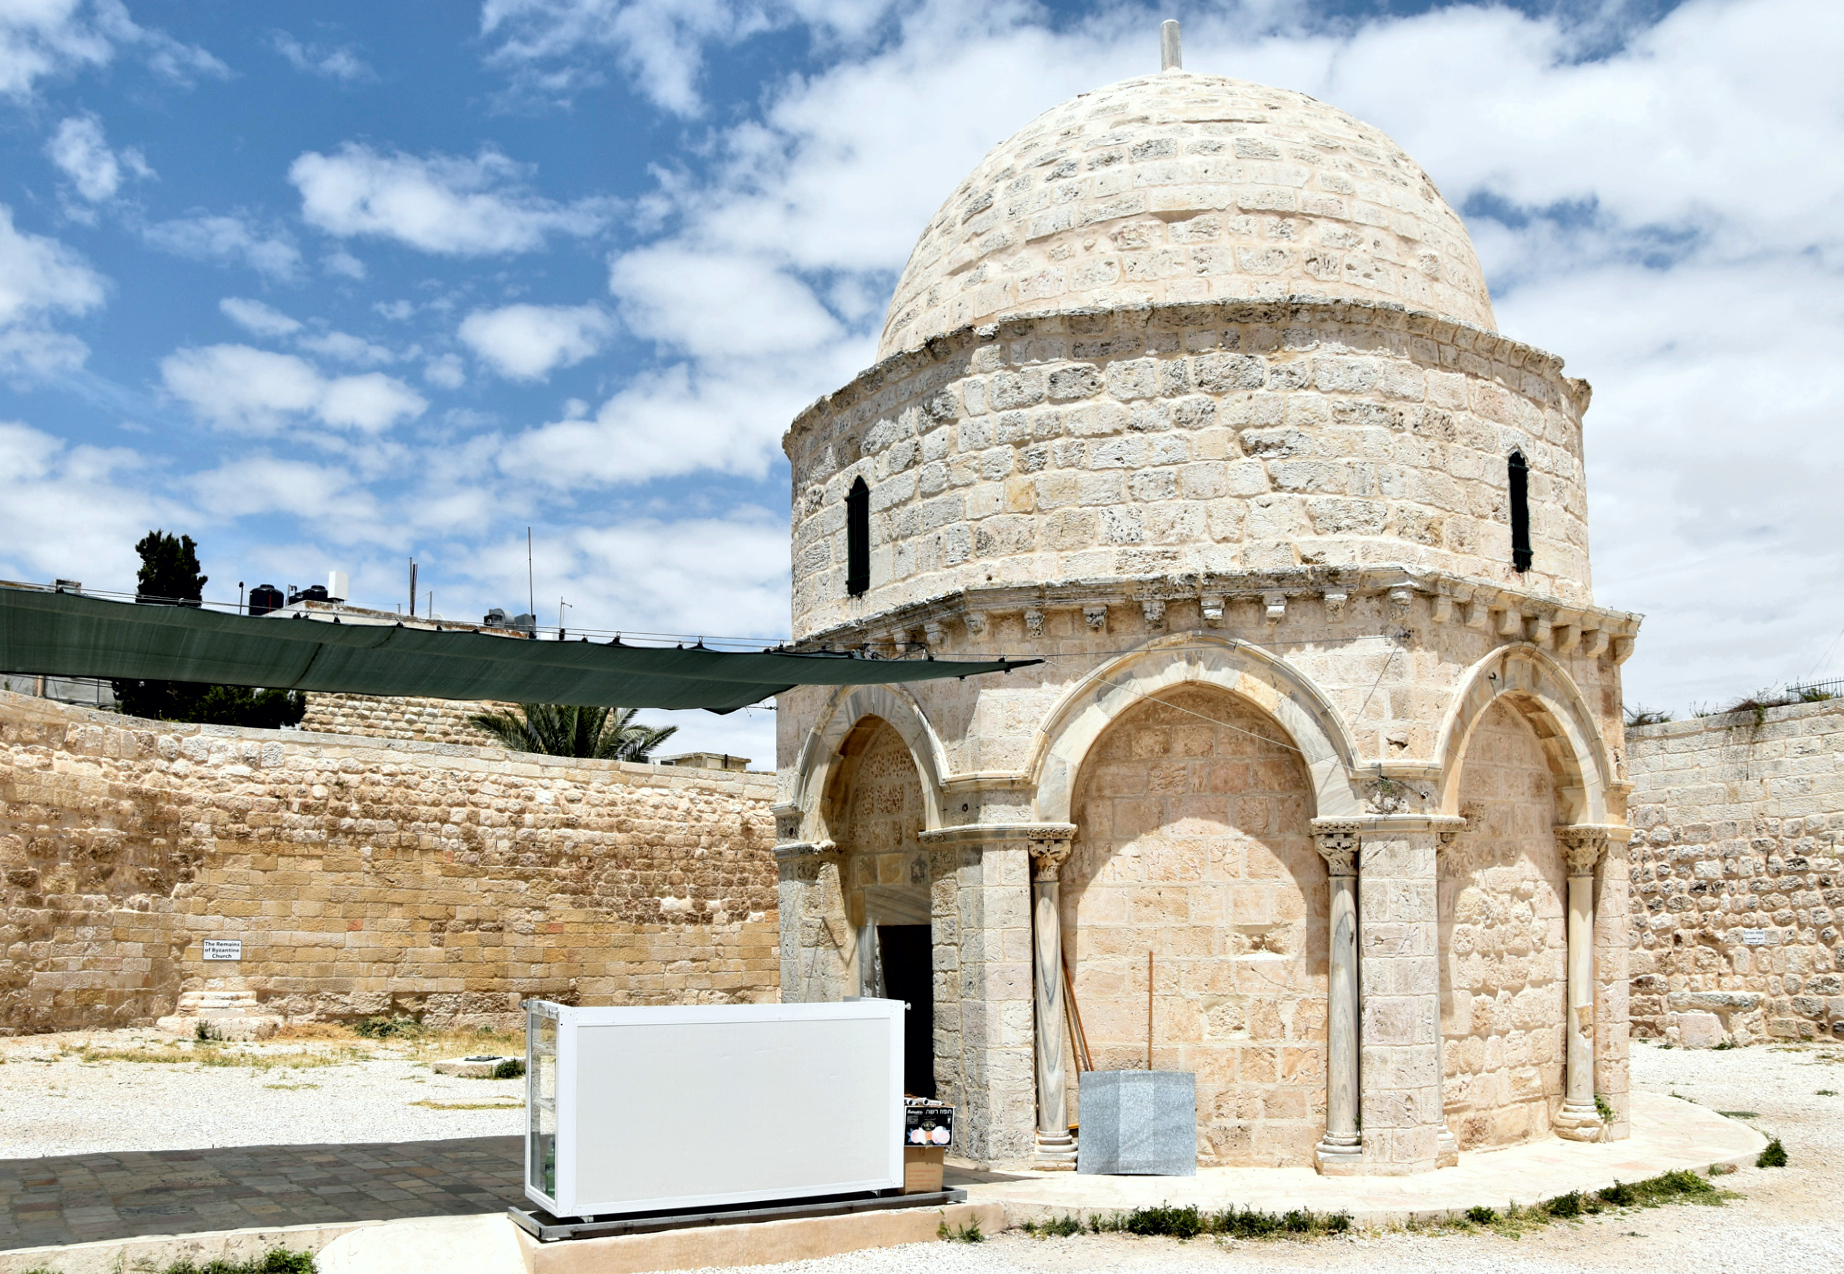 chapel on the place of the Ascension - Mount of Olives, Jerusalem